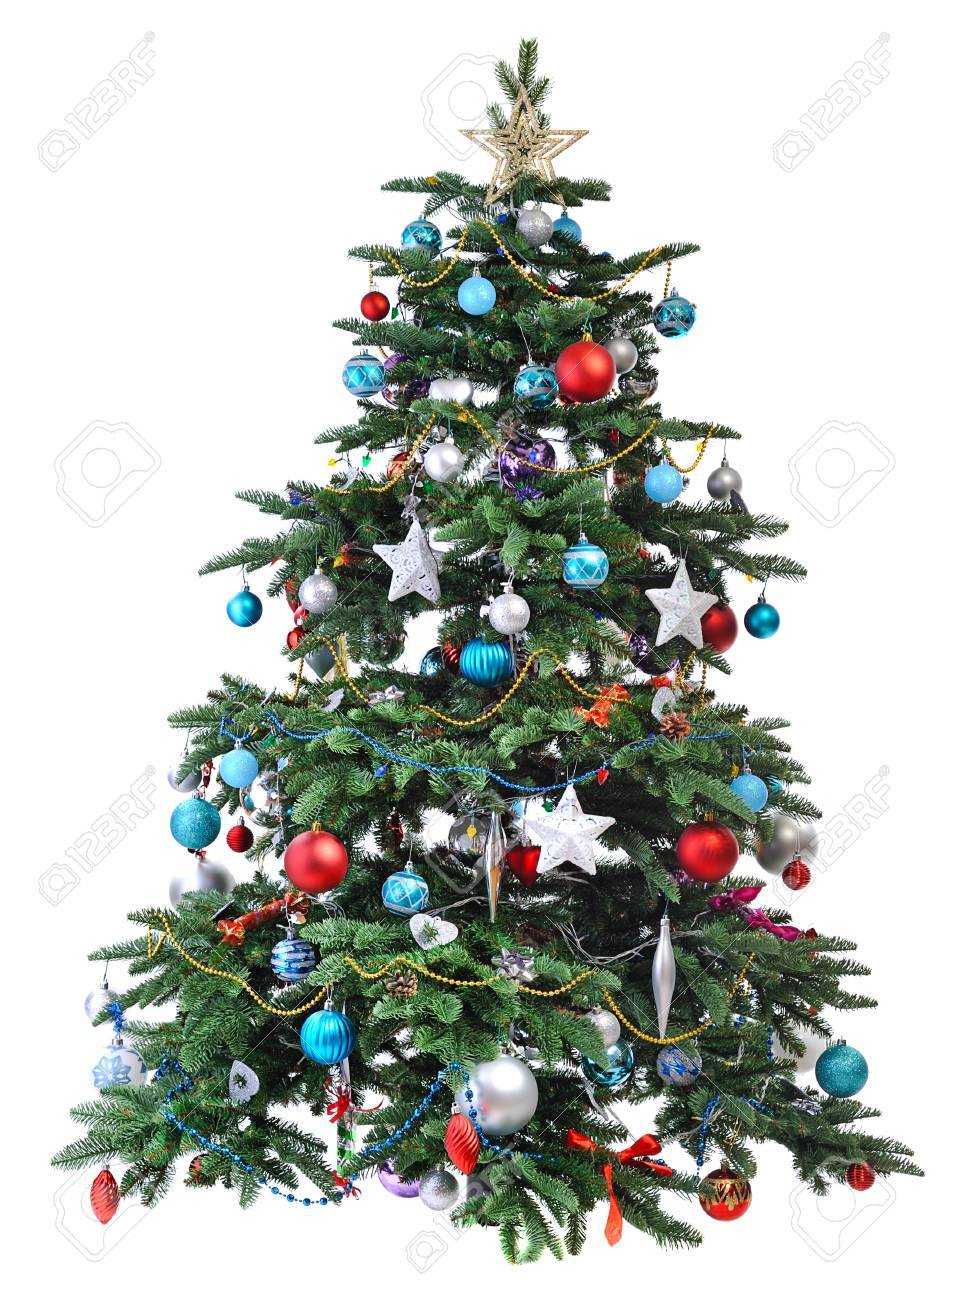 Decorated Christmas Tree Isolated On White Background Stock Photo Picture And Royalty Free Image Image 28512503